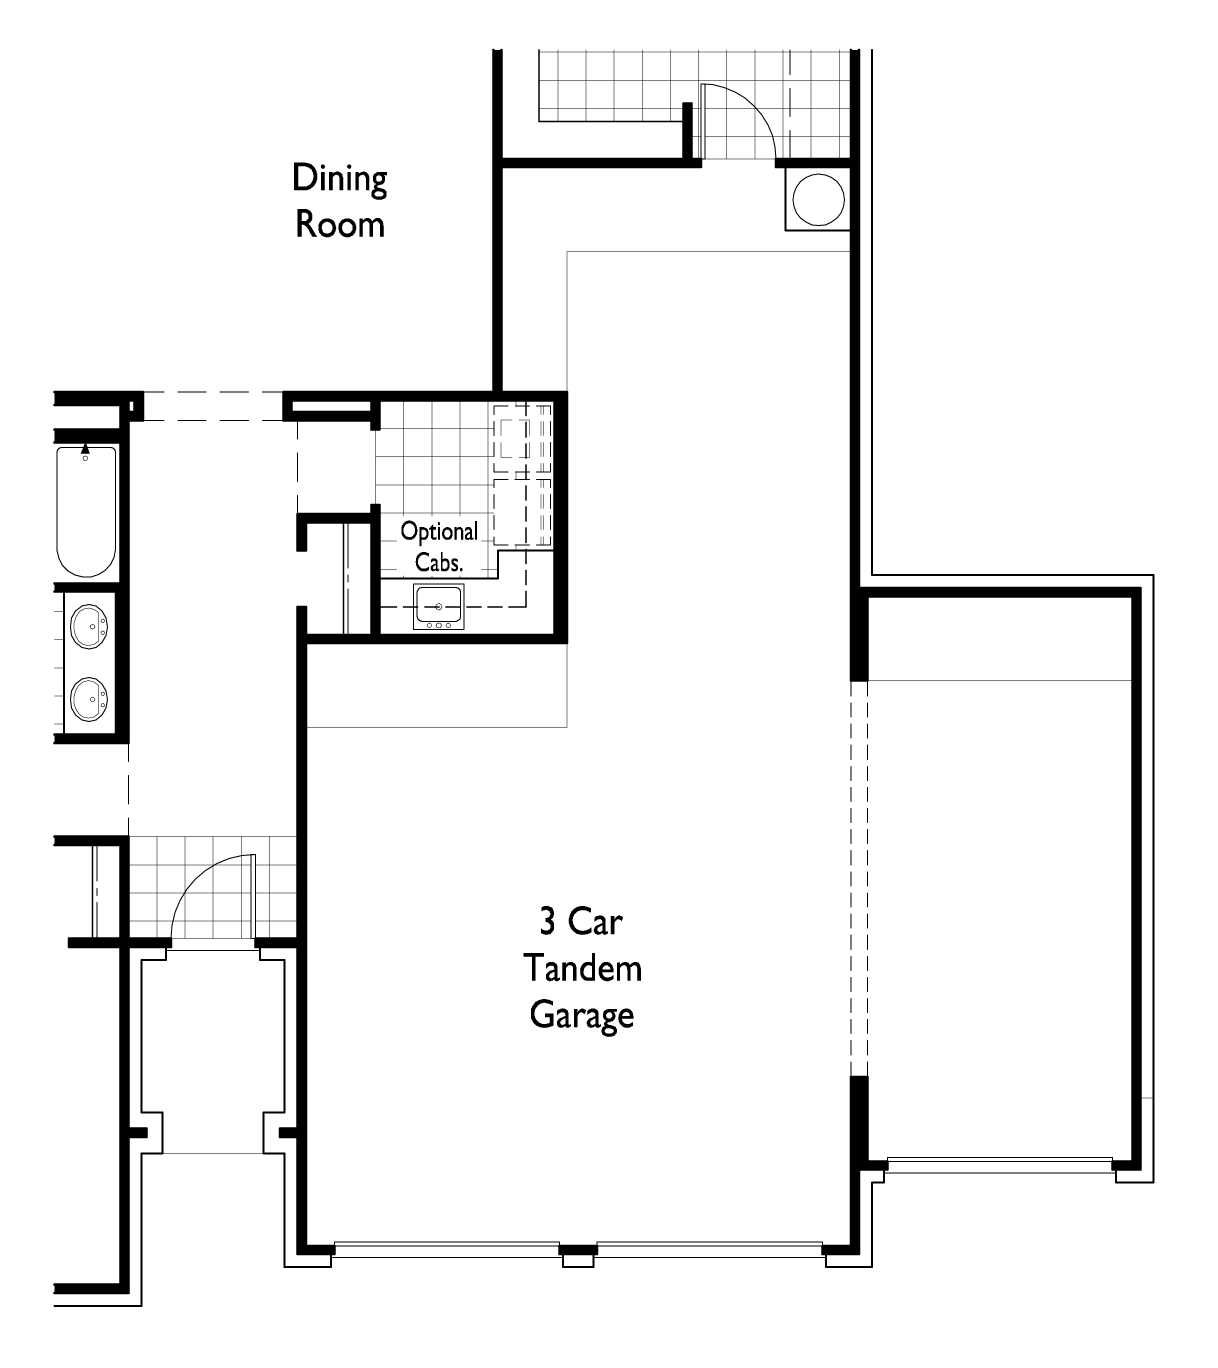 Tandem Garage House Plans Home Plans With 4 Car Tandem Garage 1 Story Google Search